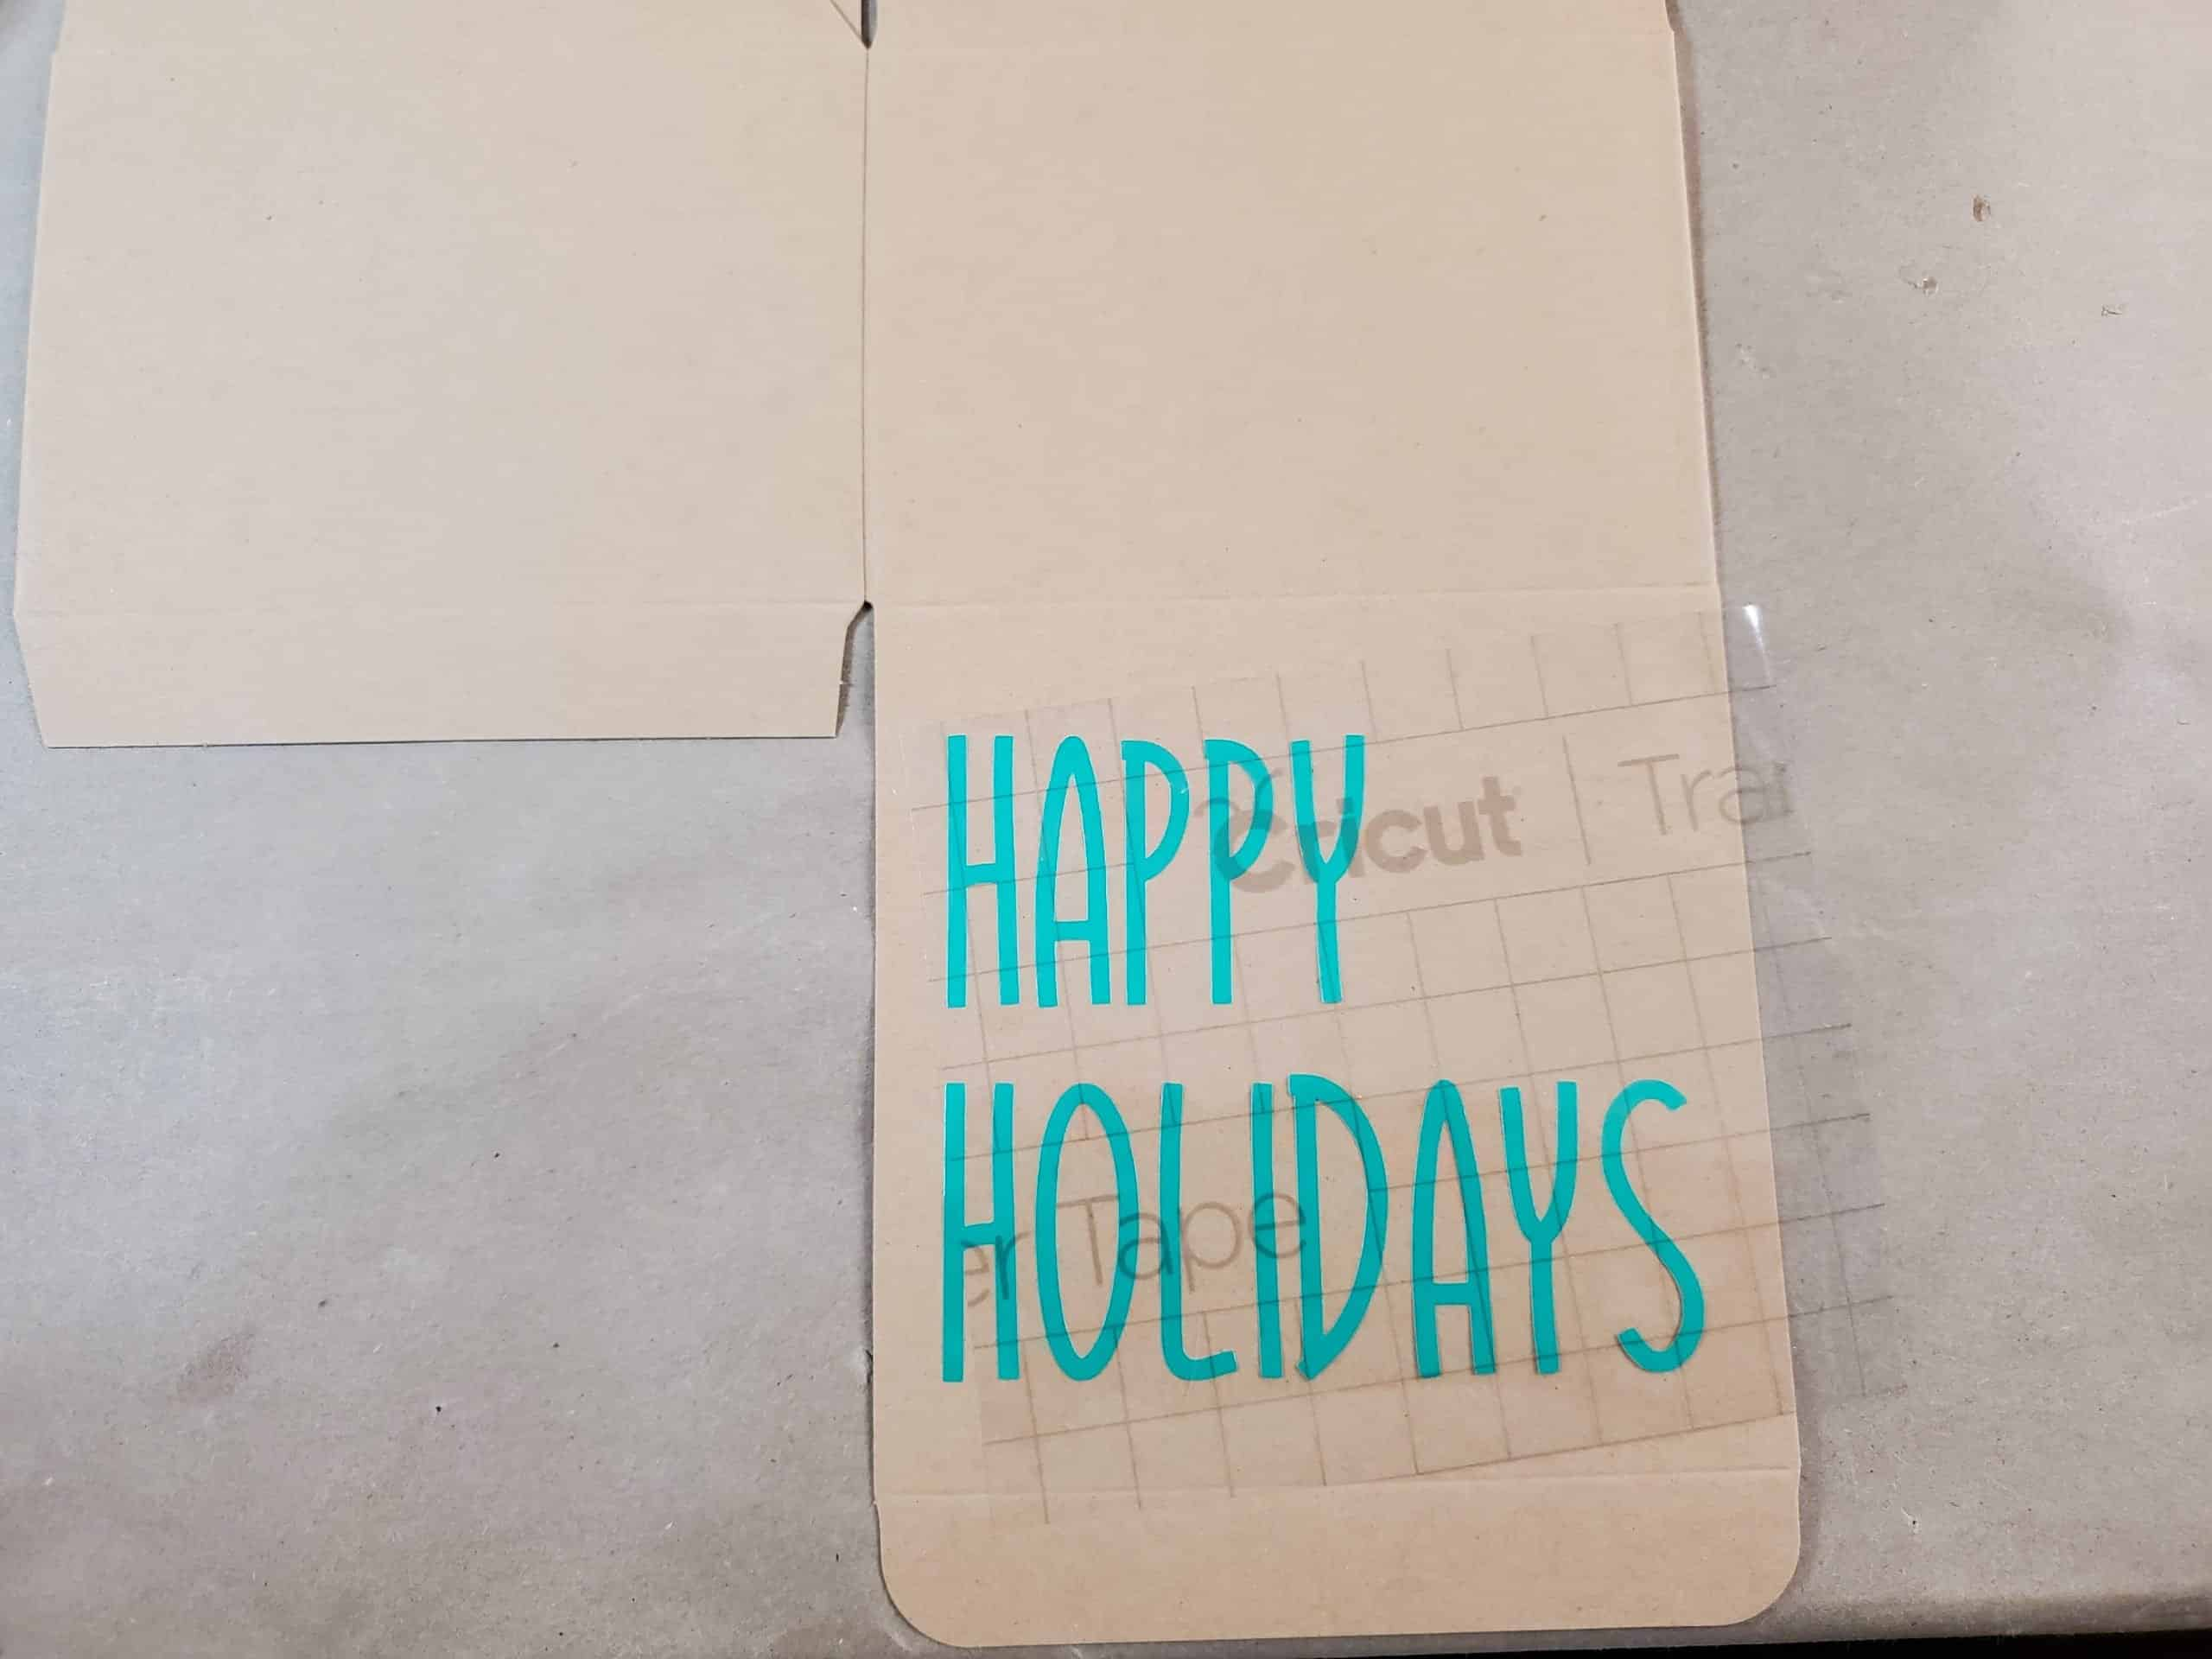 Happy Holidays Lettering Attached to Box